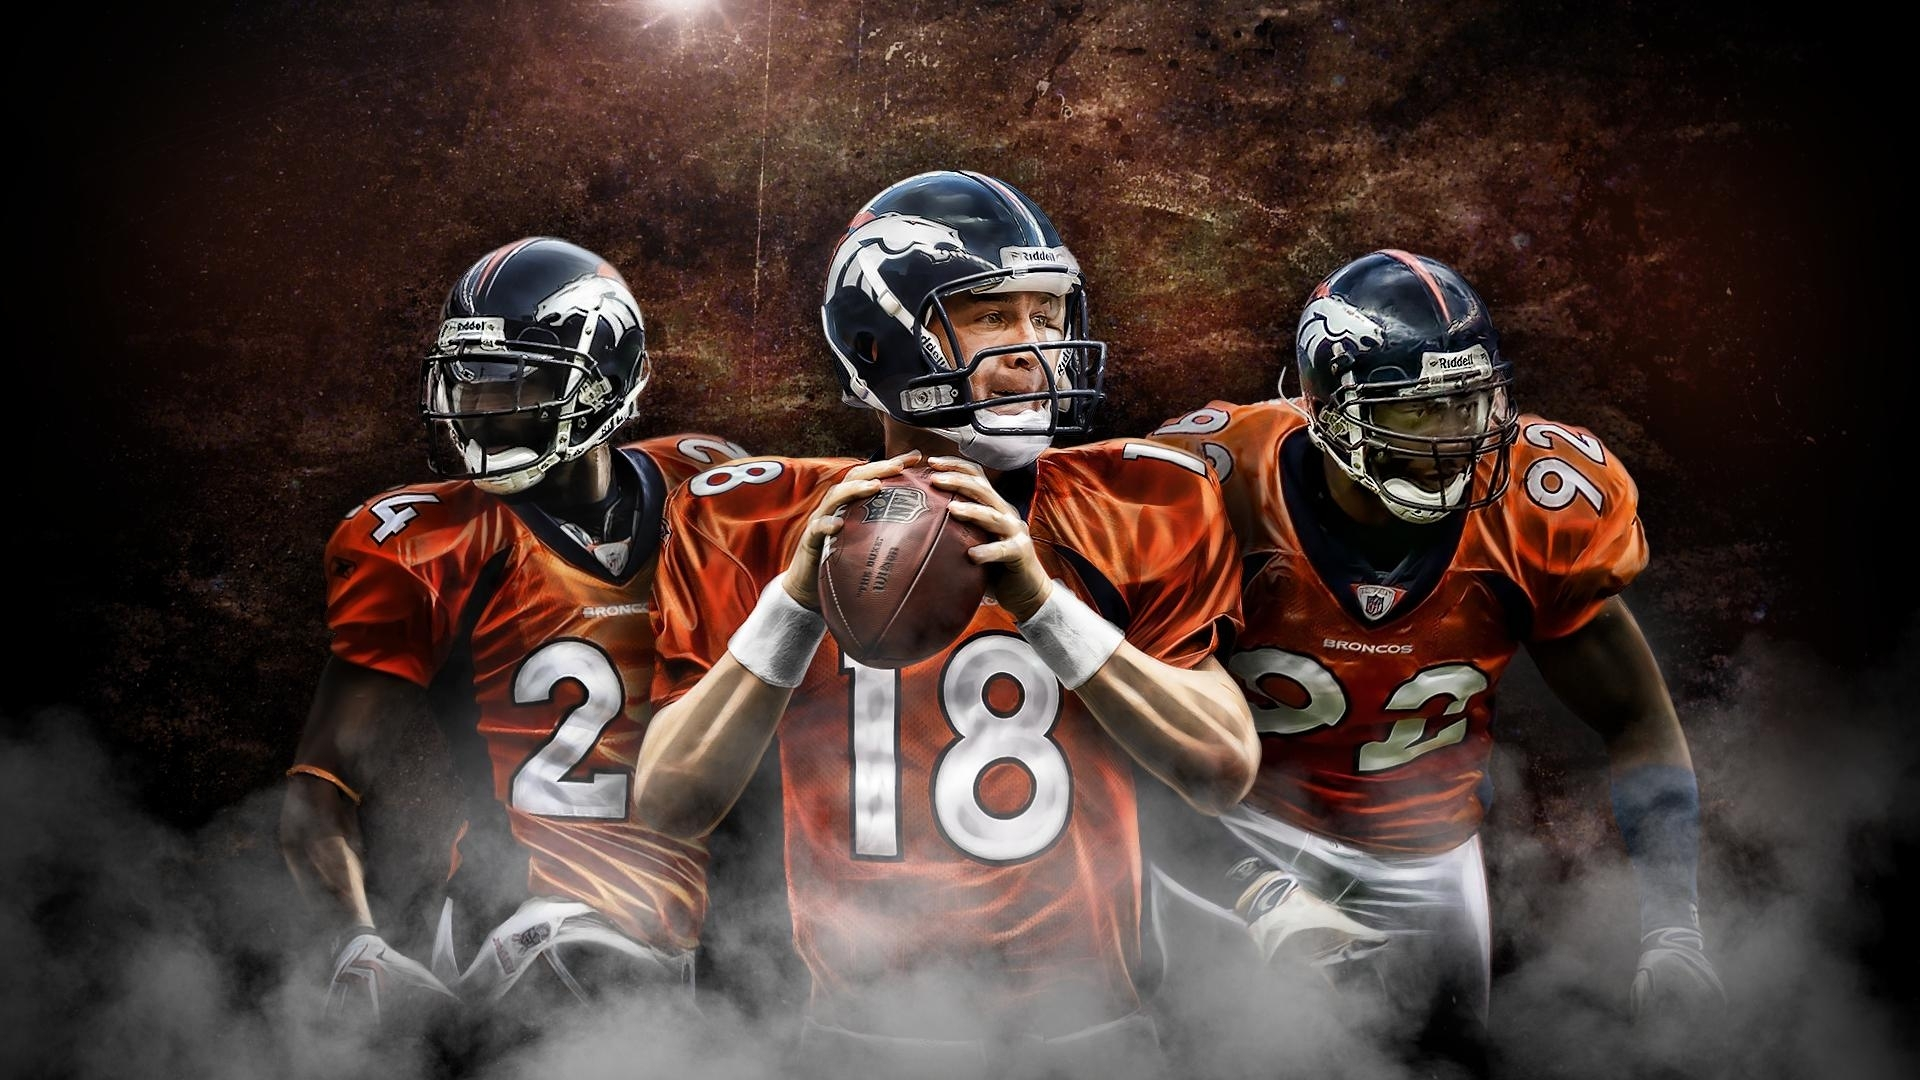 peyton manning wallpapers - wallpaper cave